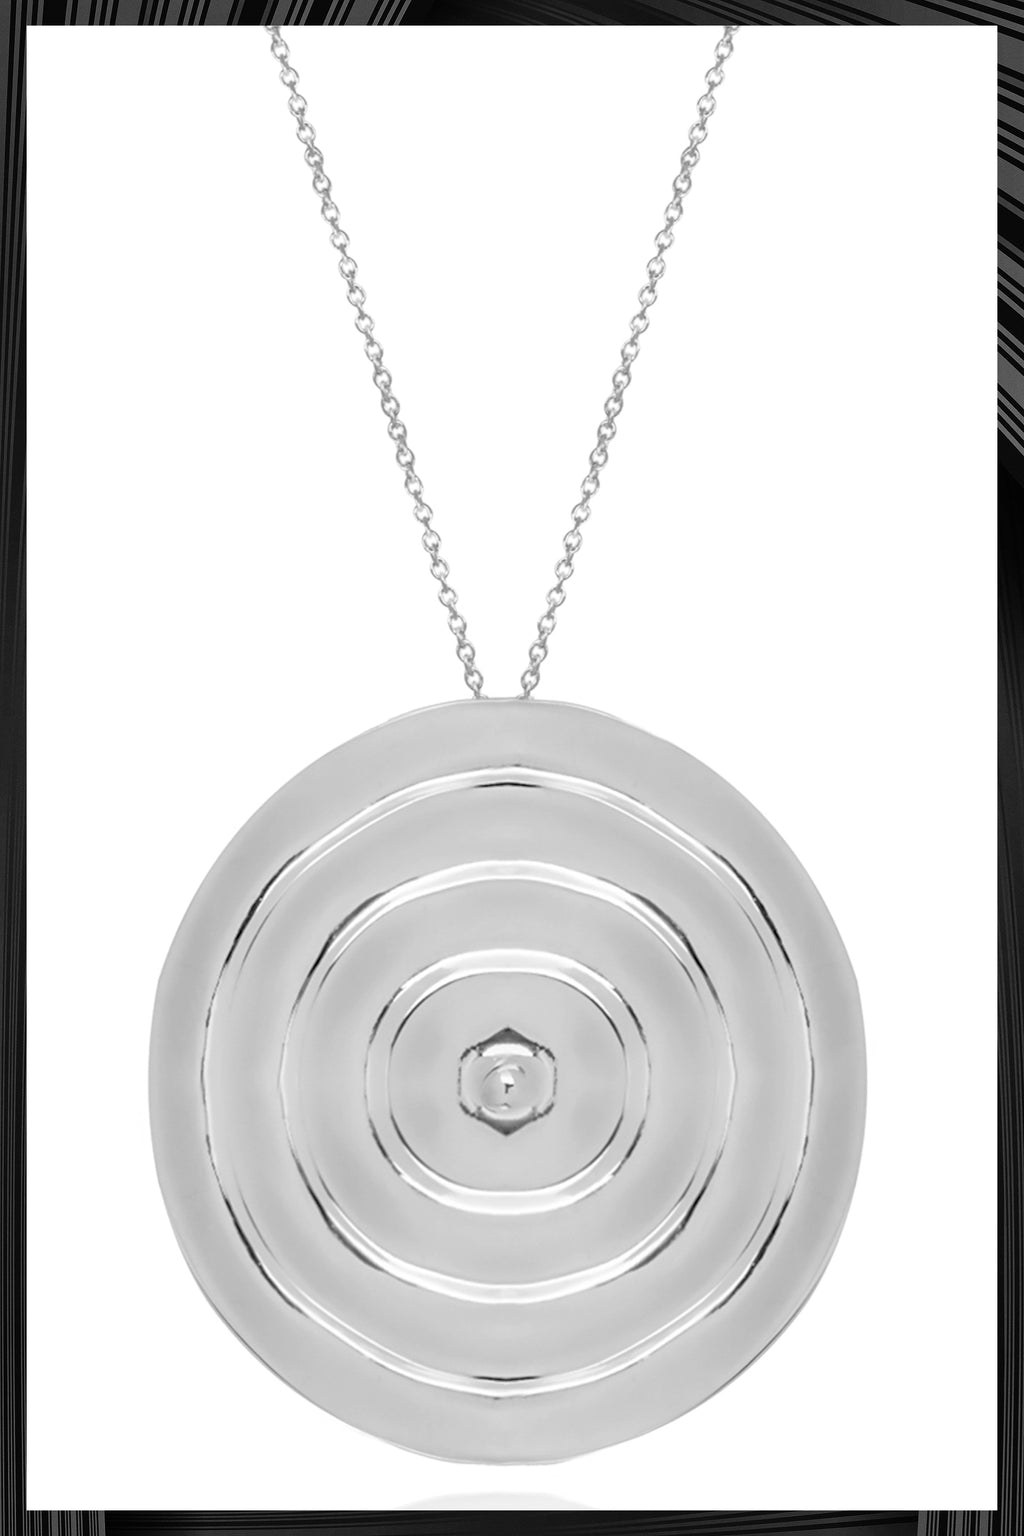 Ripples Pendant Necklace | Free Delivery - 2-3 Weeks Shipping